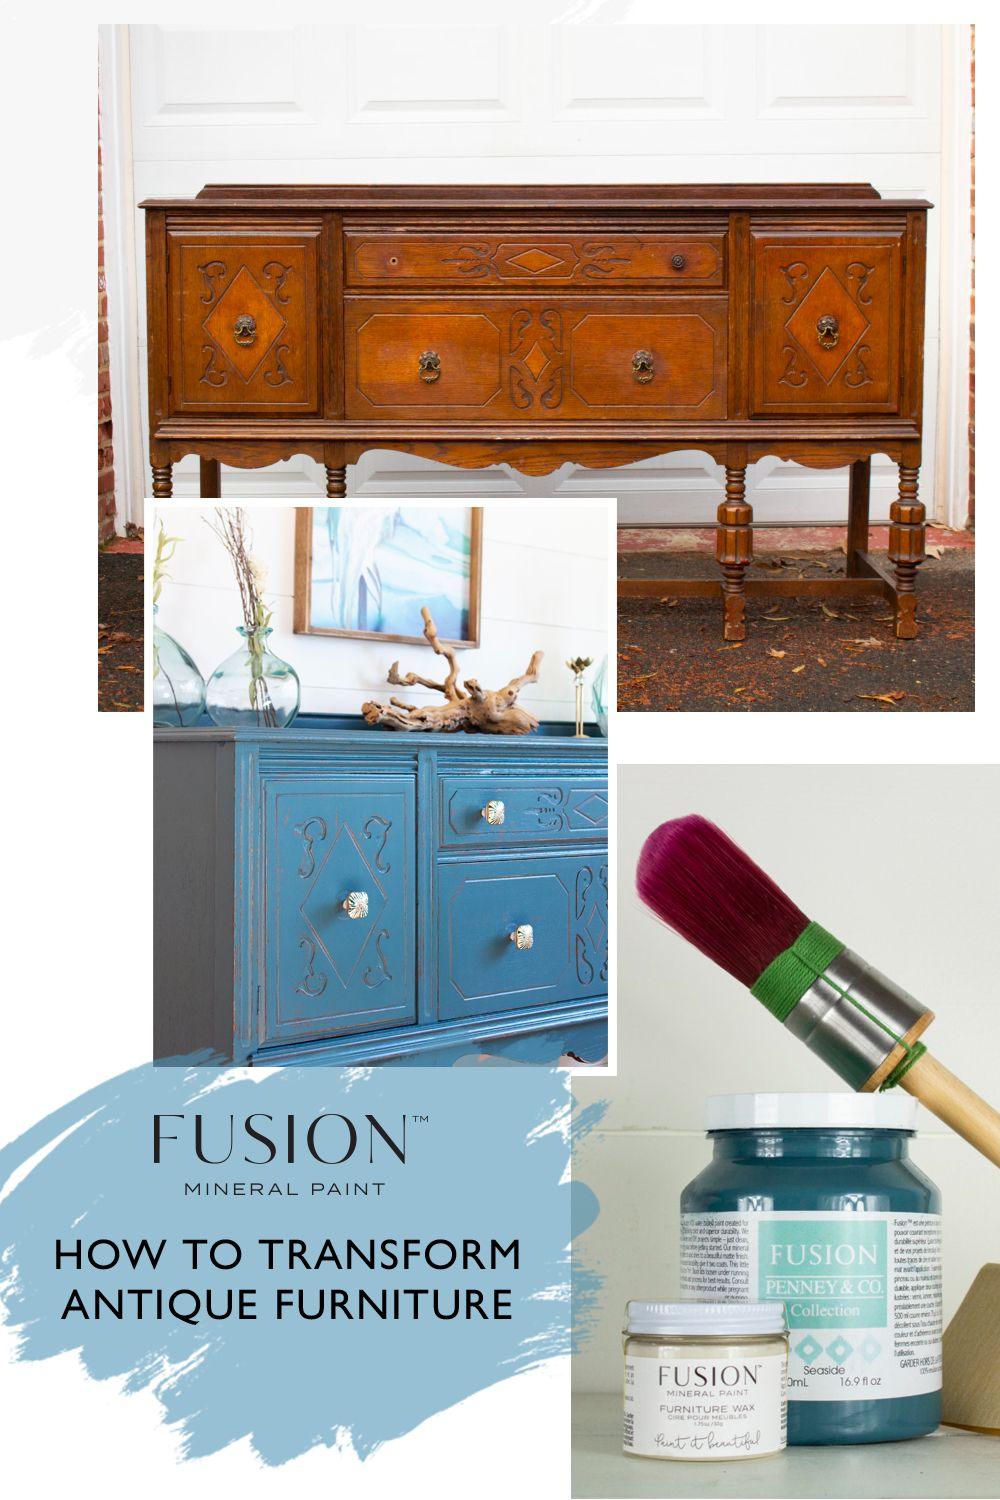 How To Transform Antique Furniture With Fusion Mineral Paint Diy Furniture Restoration Fusion Mineral Paint Antique Furniture Restoration